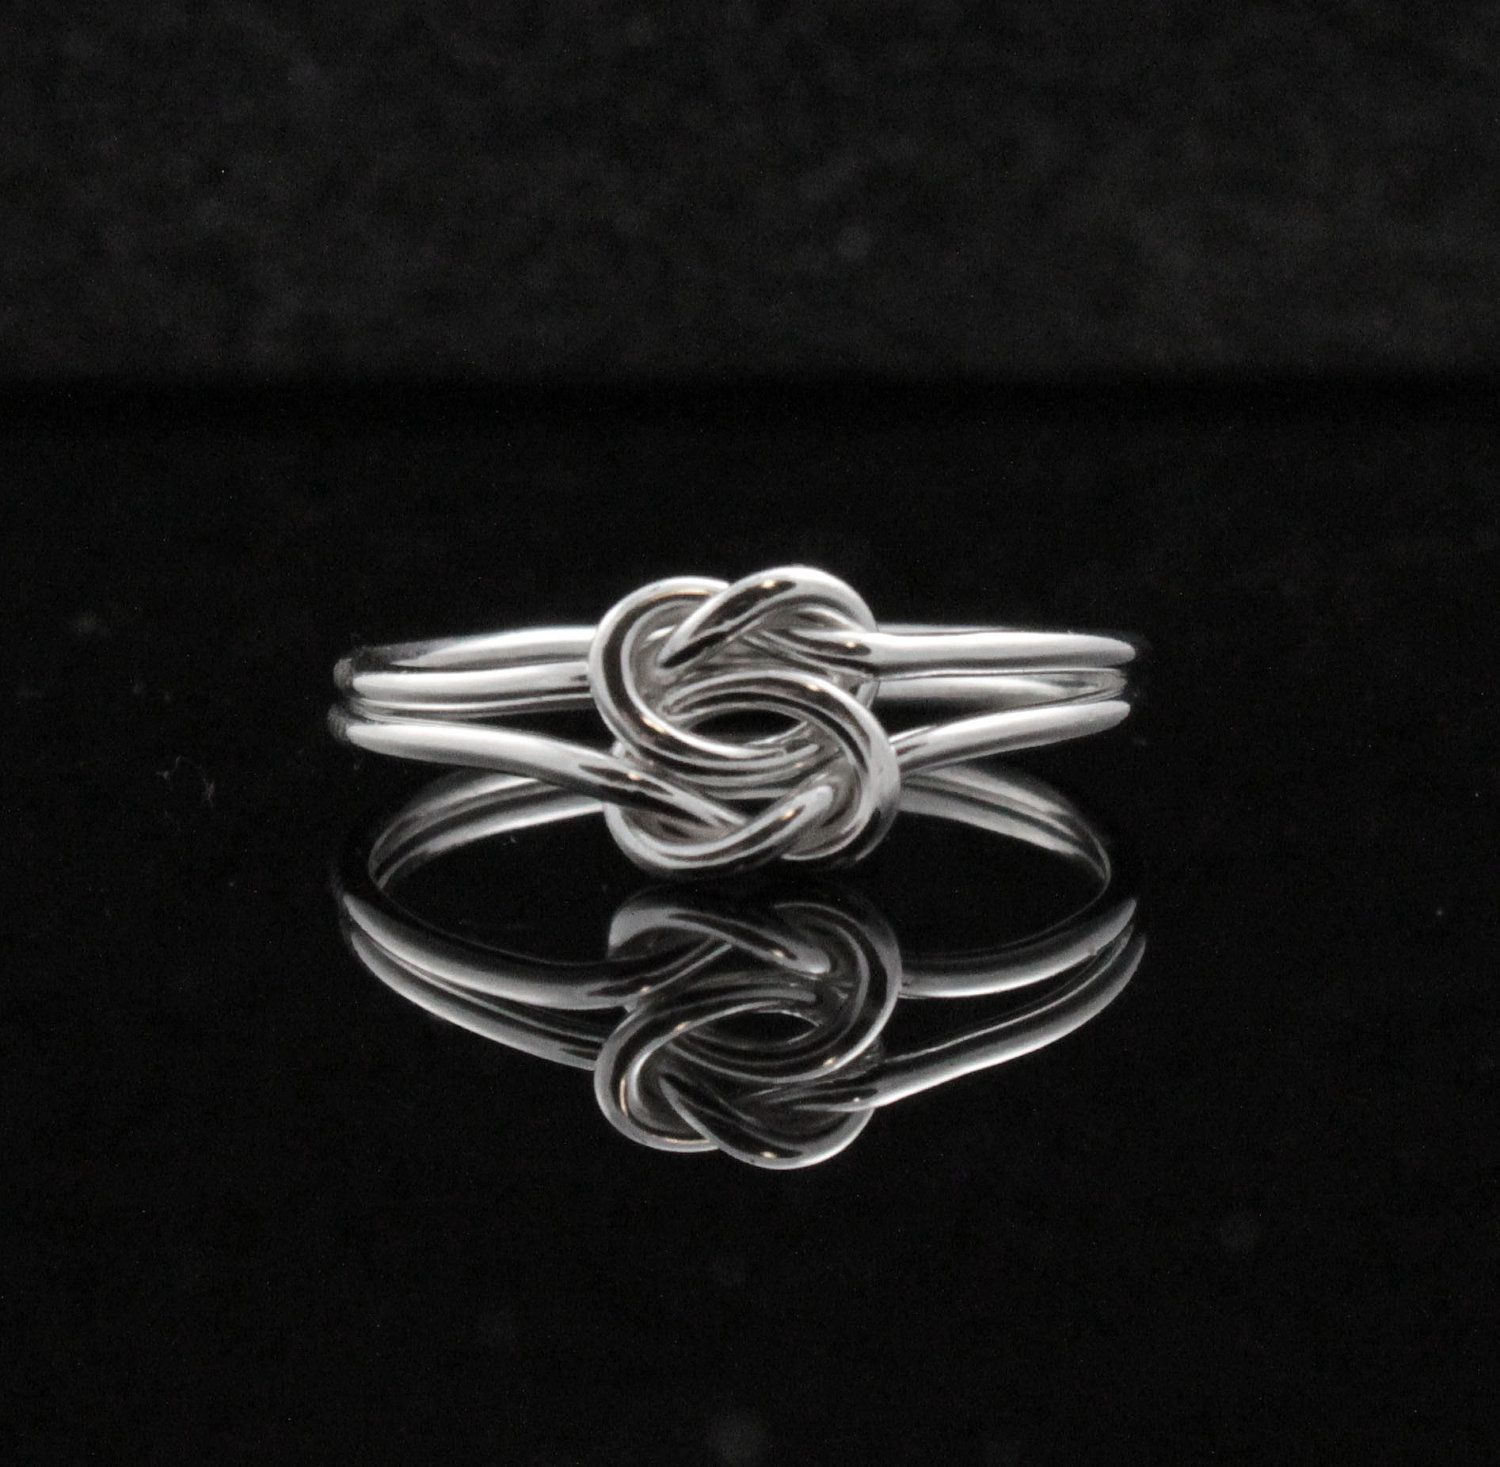 Double knot ring double infinity ring sterling silver infinity double knot ring double infinity ring sterling silver infinity ring celtic knot chinese knot commitment ring 3200 via etsy biocorpaavc Gallery